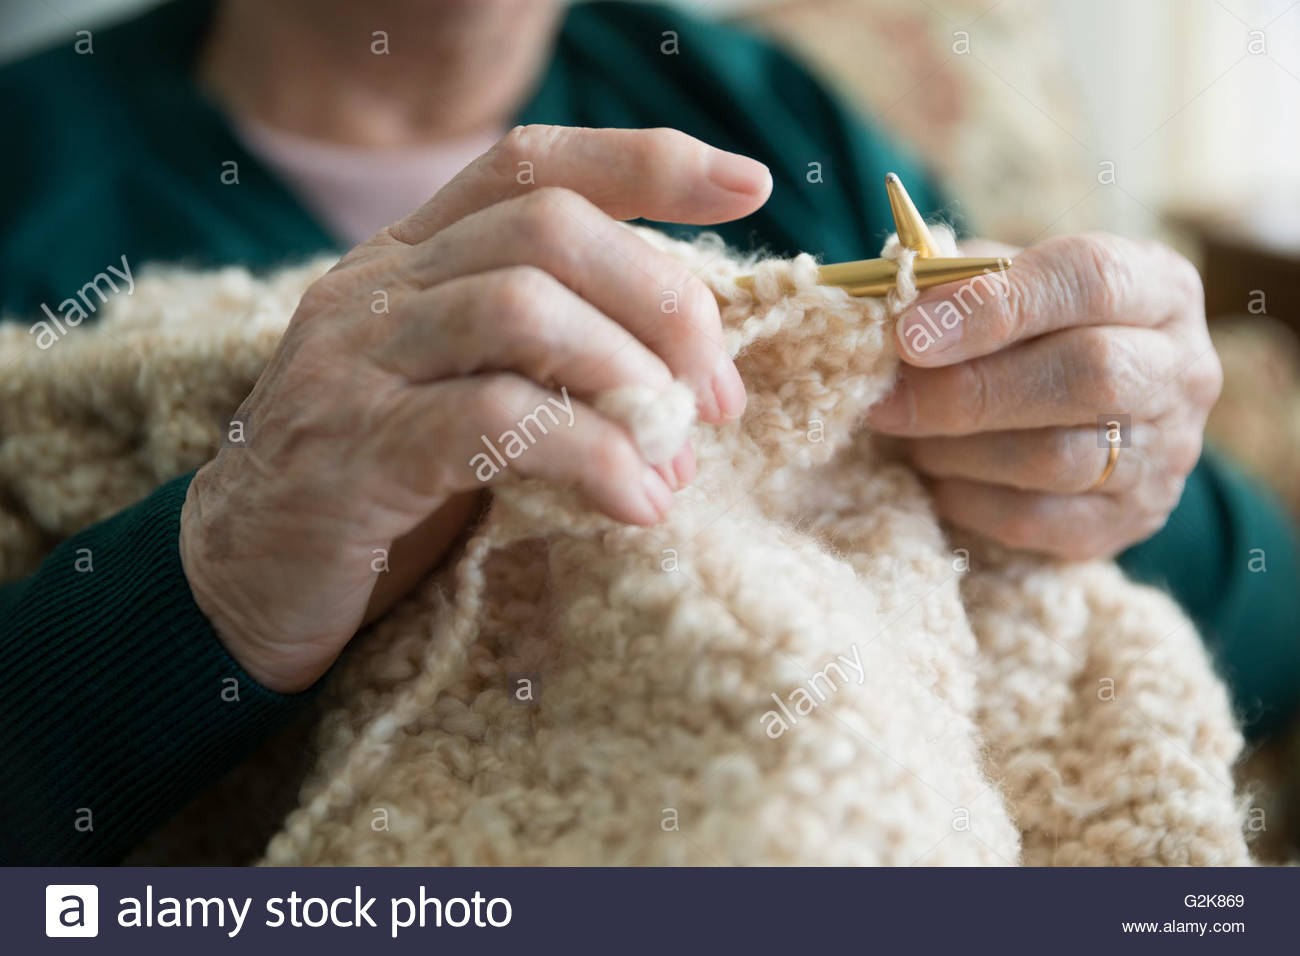 Close up senior woman knitting - Stock Image